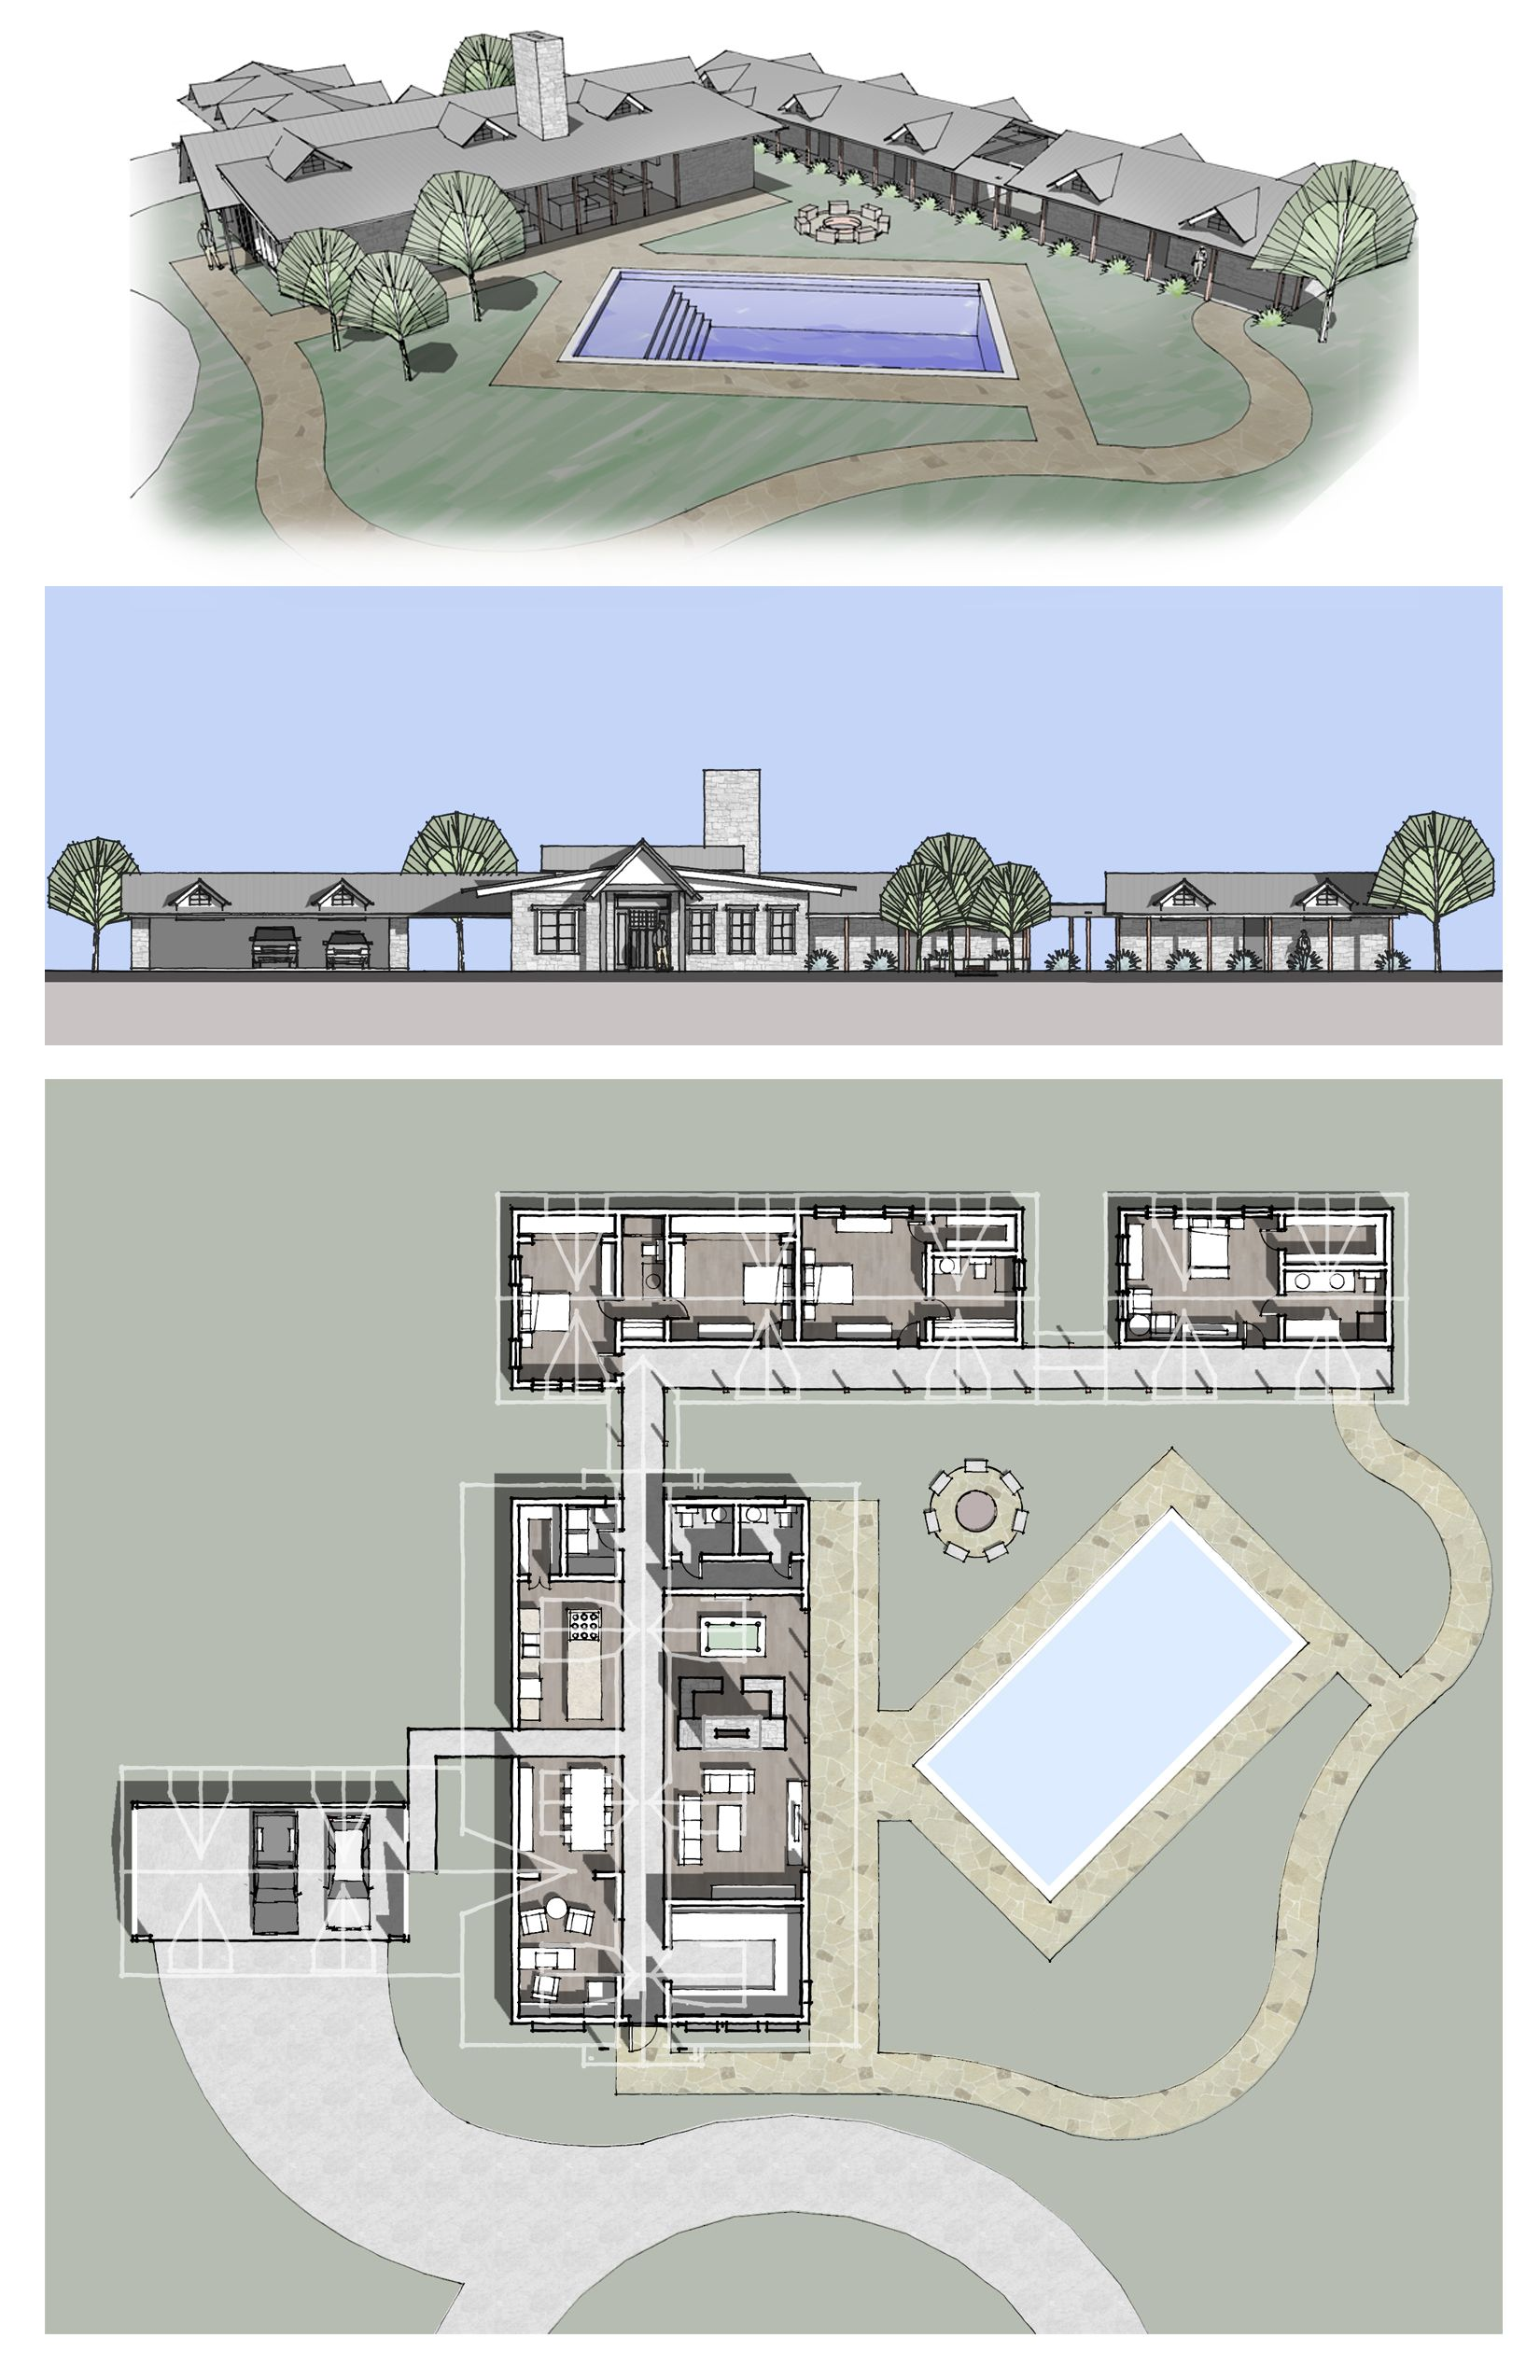 Various Google Sketchup Architectural Renderings Of A Ranch Style House Perspective Elevation Plan View Architectural Floor Plans Floor Plans How To Plan